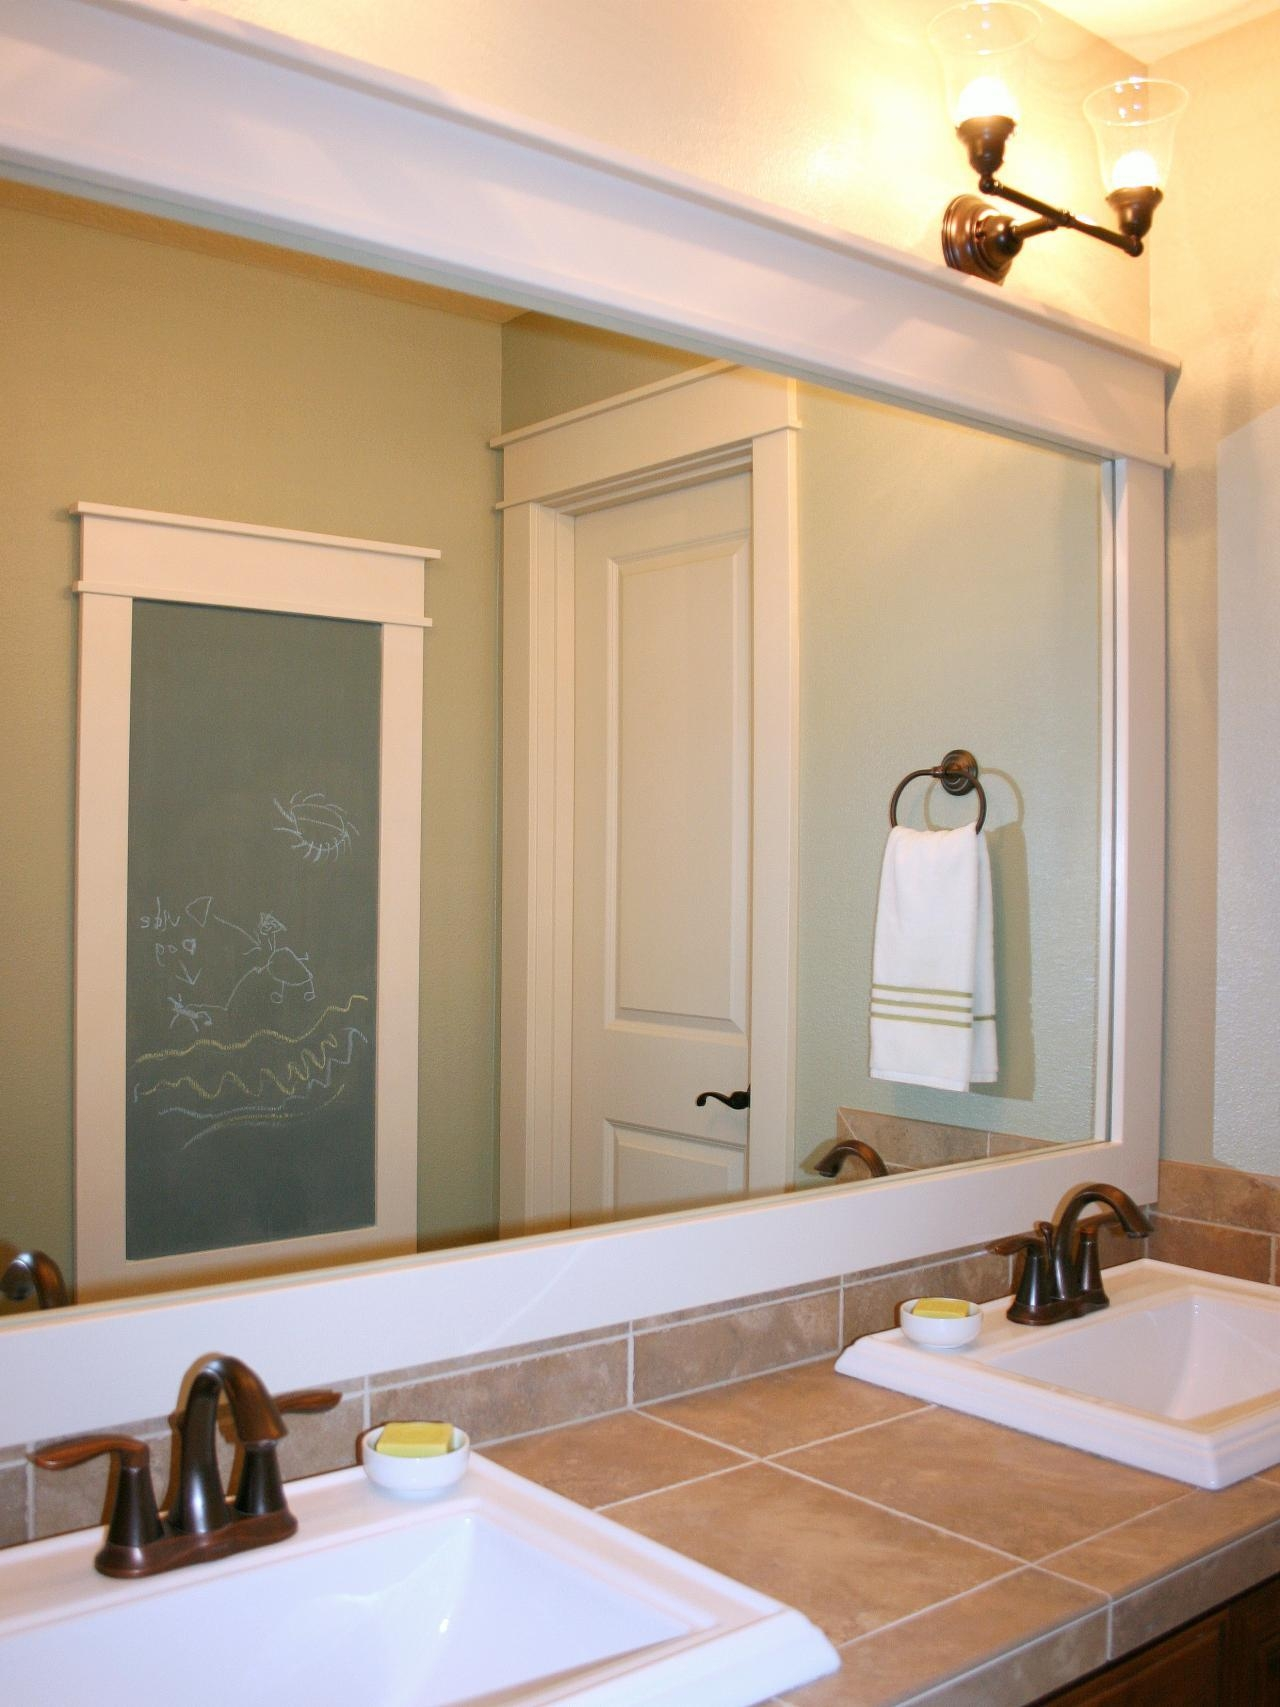 How To Frame A Mirror | Hgtv Regarding Wall Mirrors For Bathrooms (View 2 of 20)